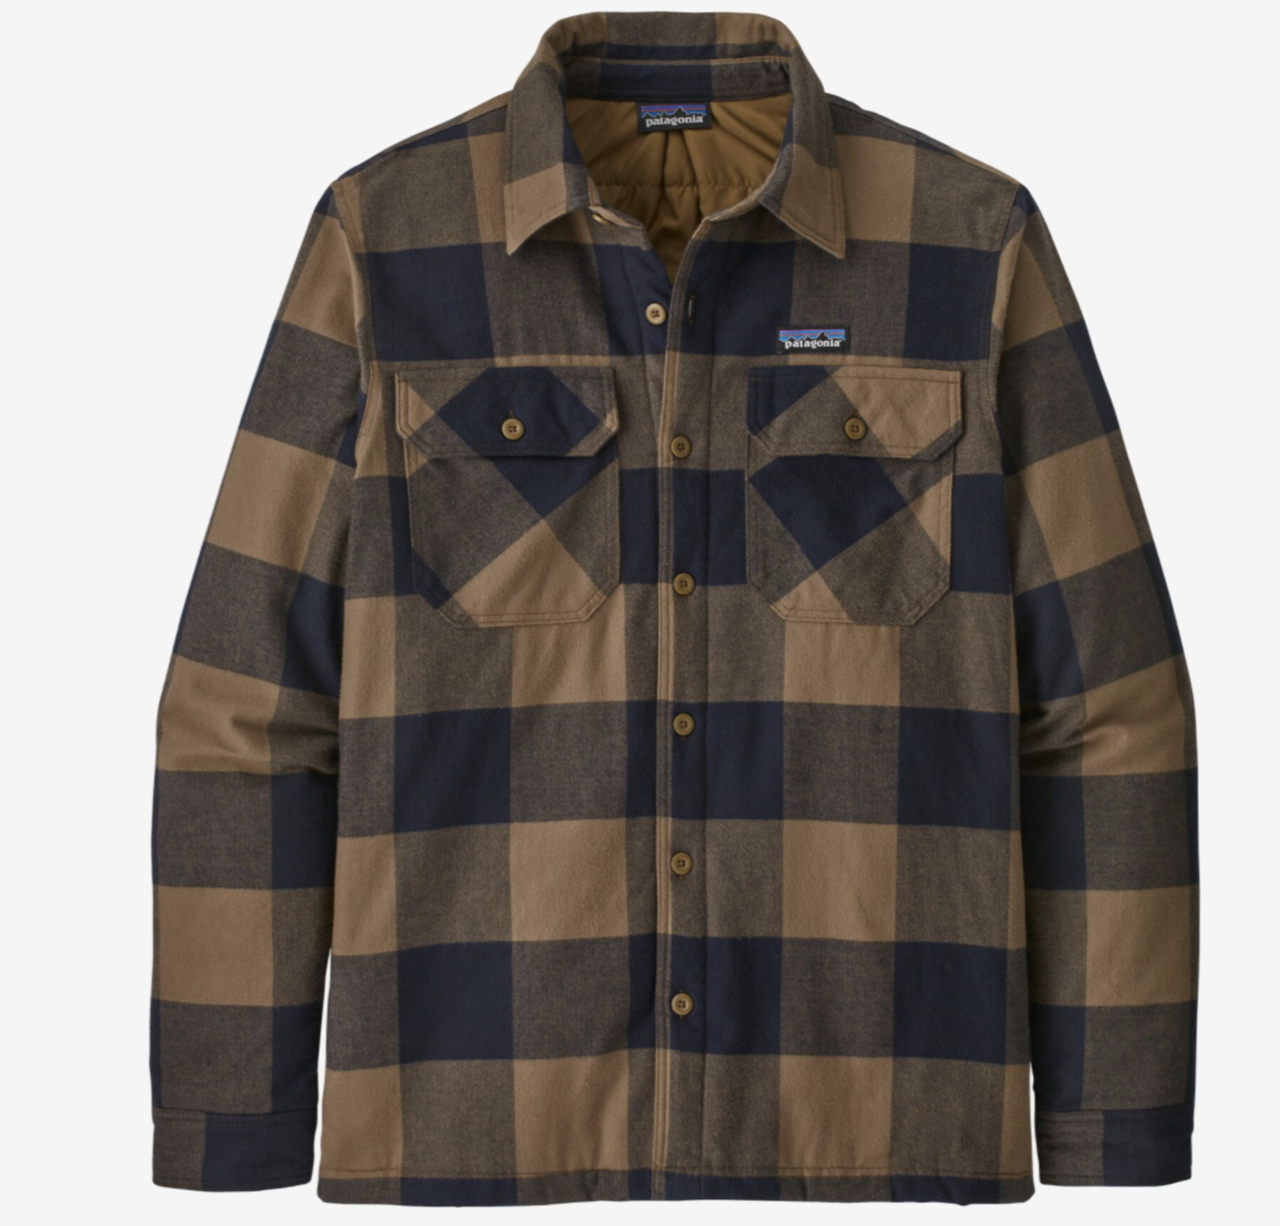 Patagonia Men's Insulated Organic Cotton Midweight Fjord Flannel Shirt